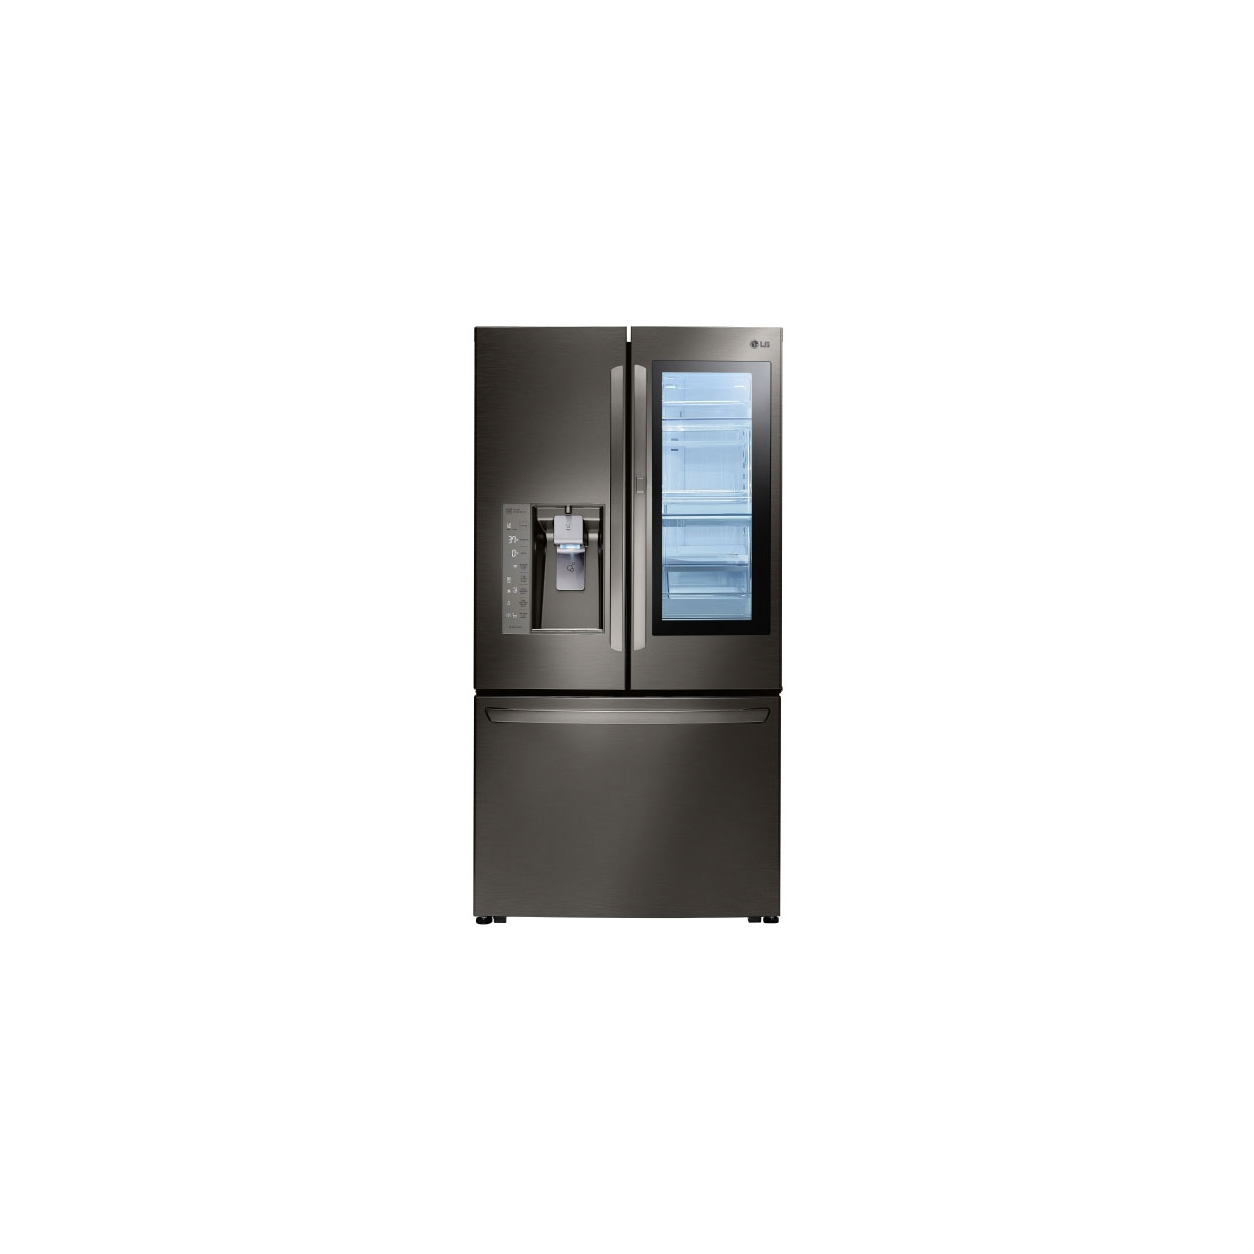 French Door kenmore elite french door refrigerator reviews photos : 20 Best Refrigerators, Reviews and Refrigerator Tests